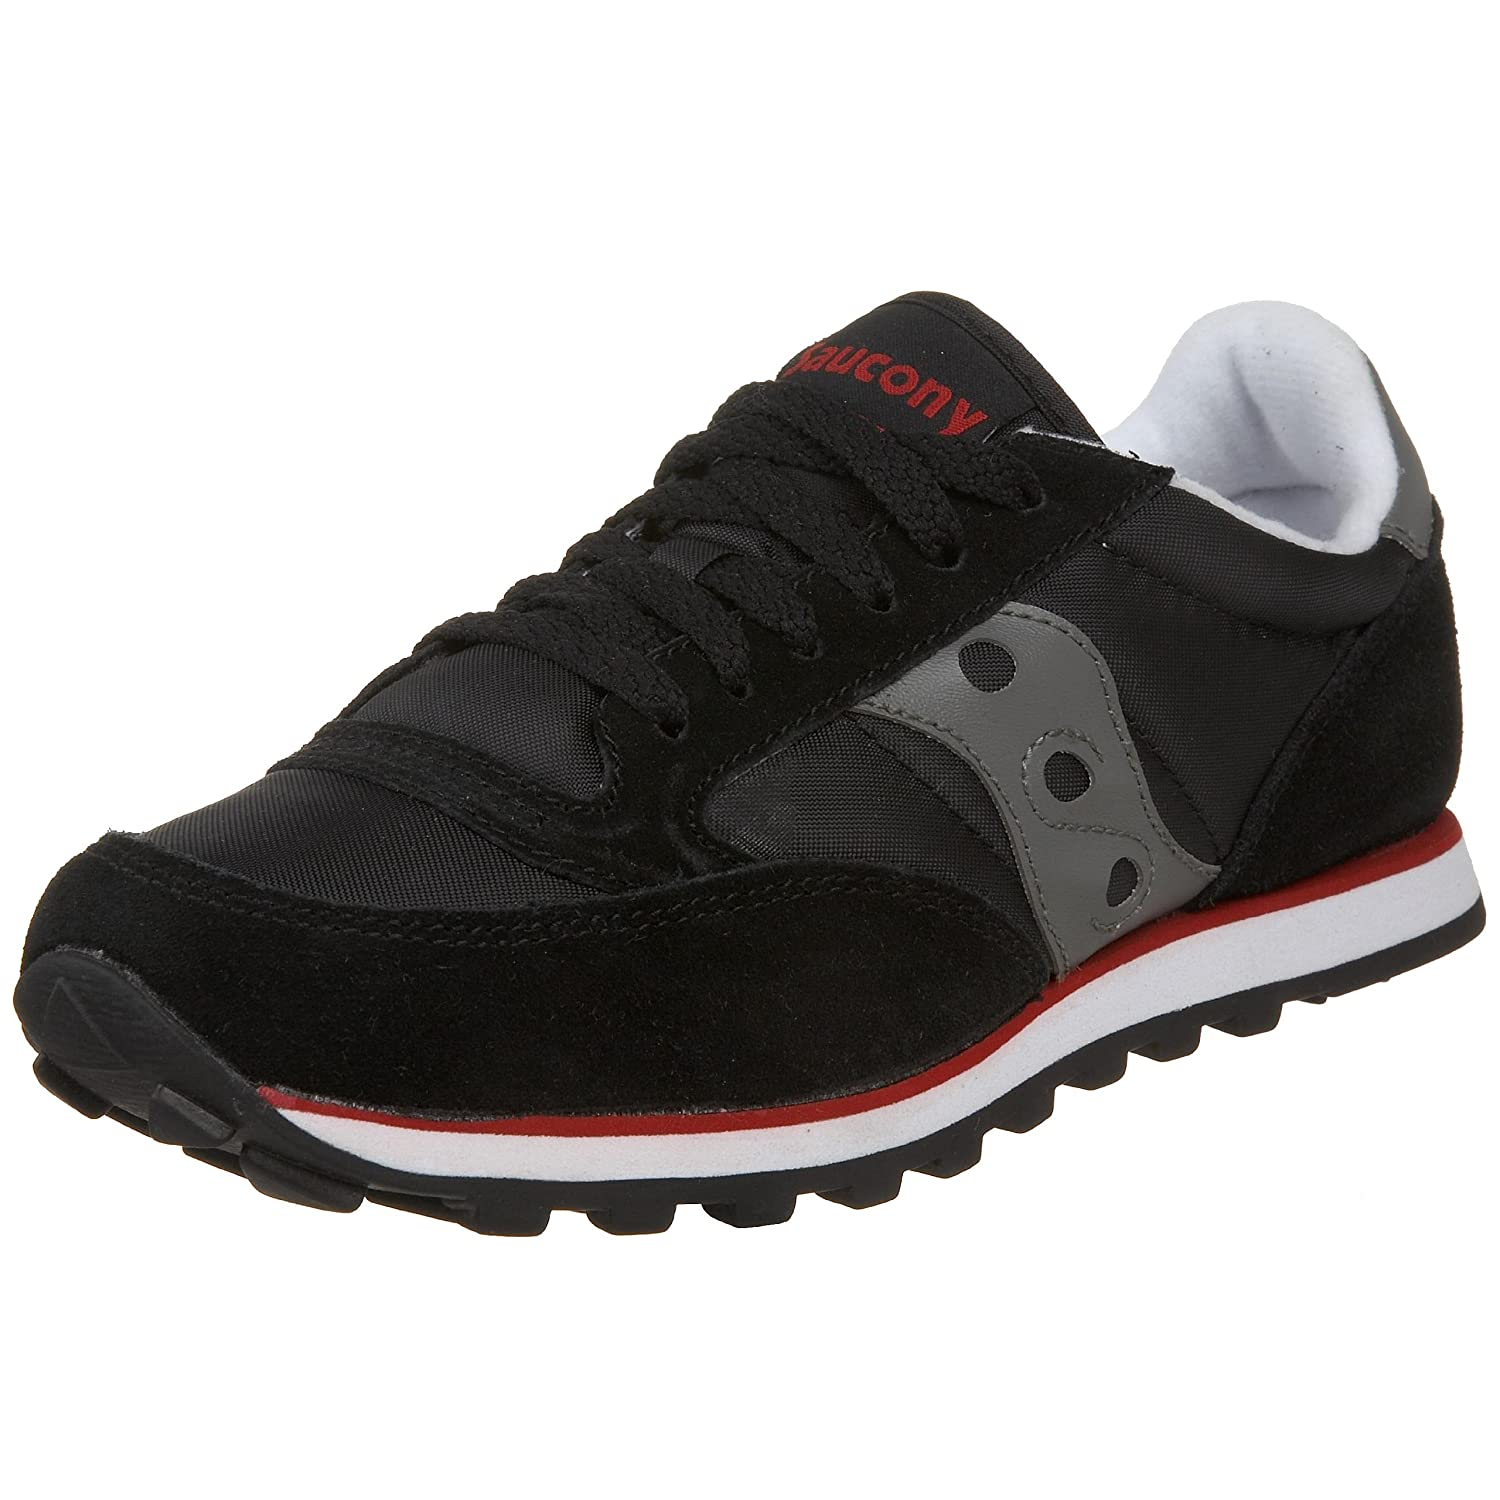 Zapatillas para mujer Saucony Jazz Low Pro - Black/Gray/Red 36 EU